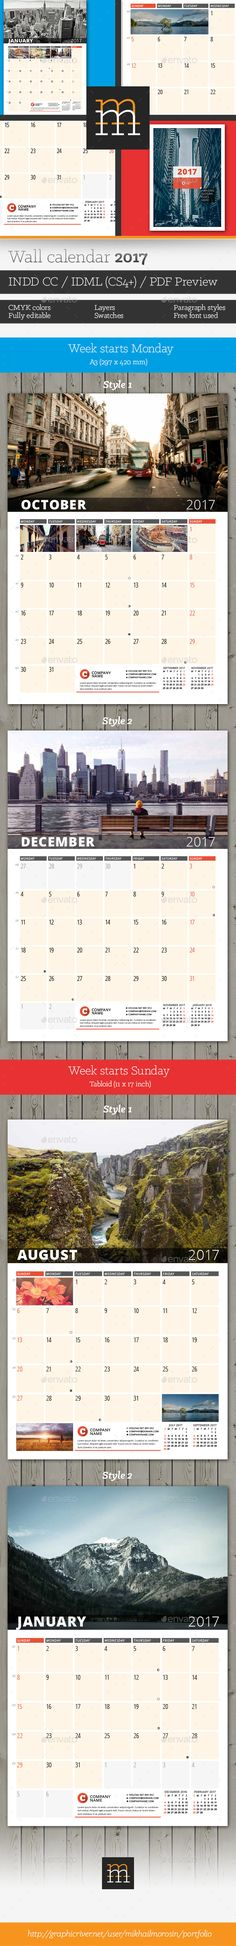 3 Year Calendars; different styles of calendar templates - calendar templates